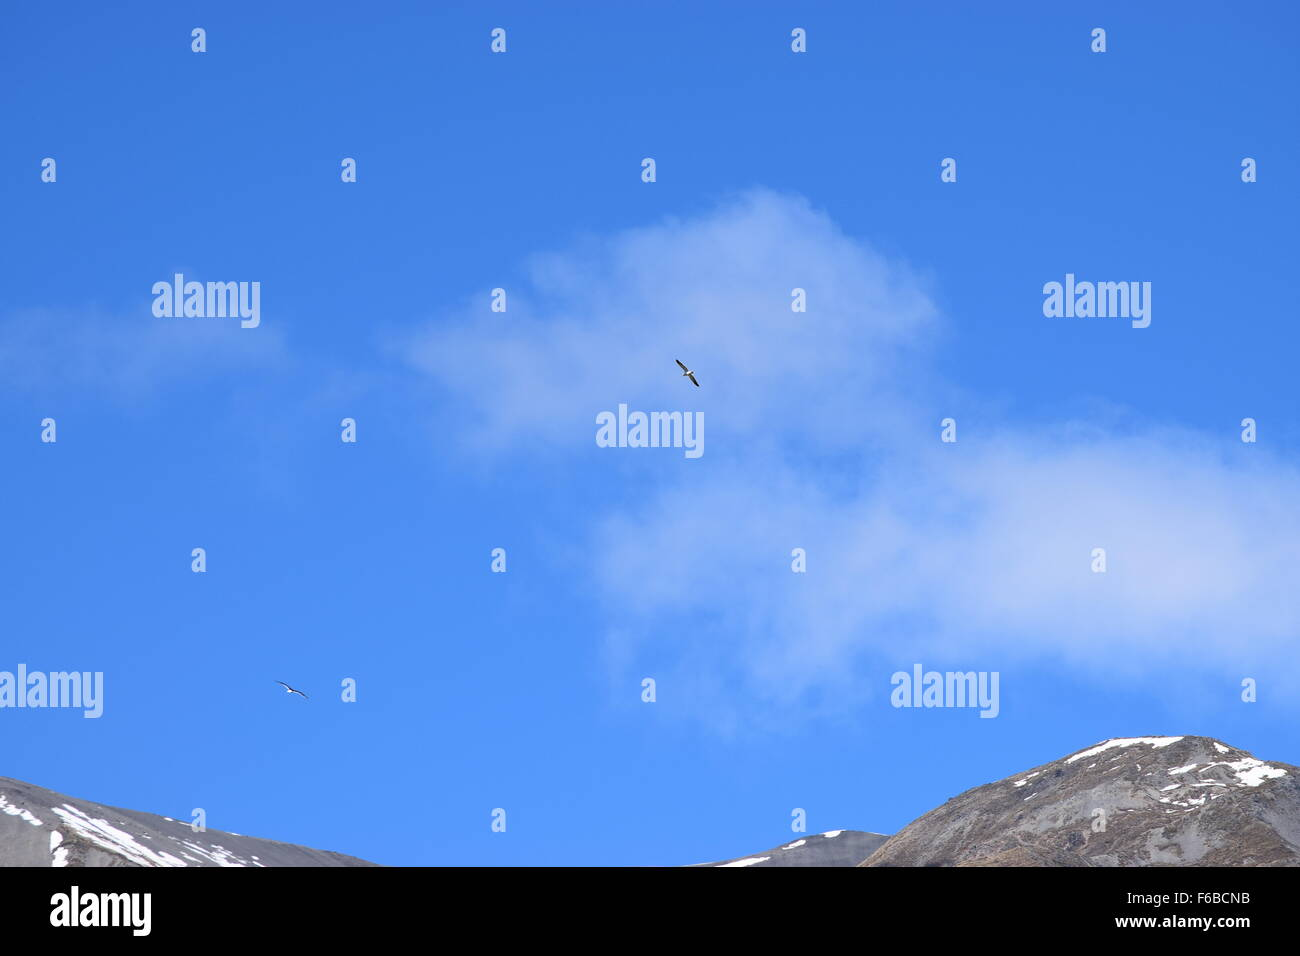 vivid blue sky with a bird in full flight, white fluffy clouds and mountain tops, photo taken on the Great Alpine - Stock Image